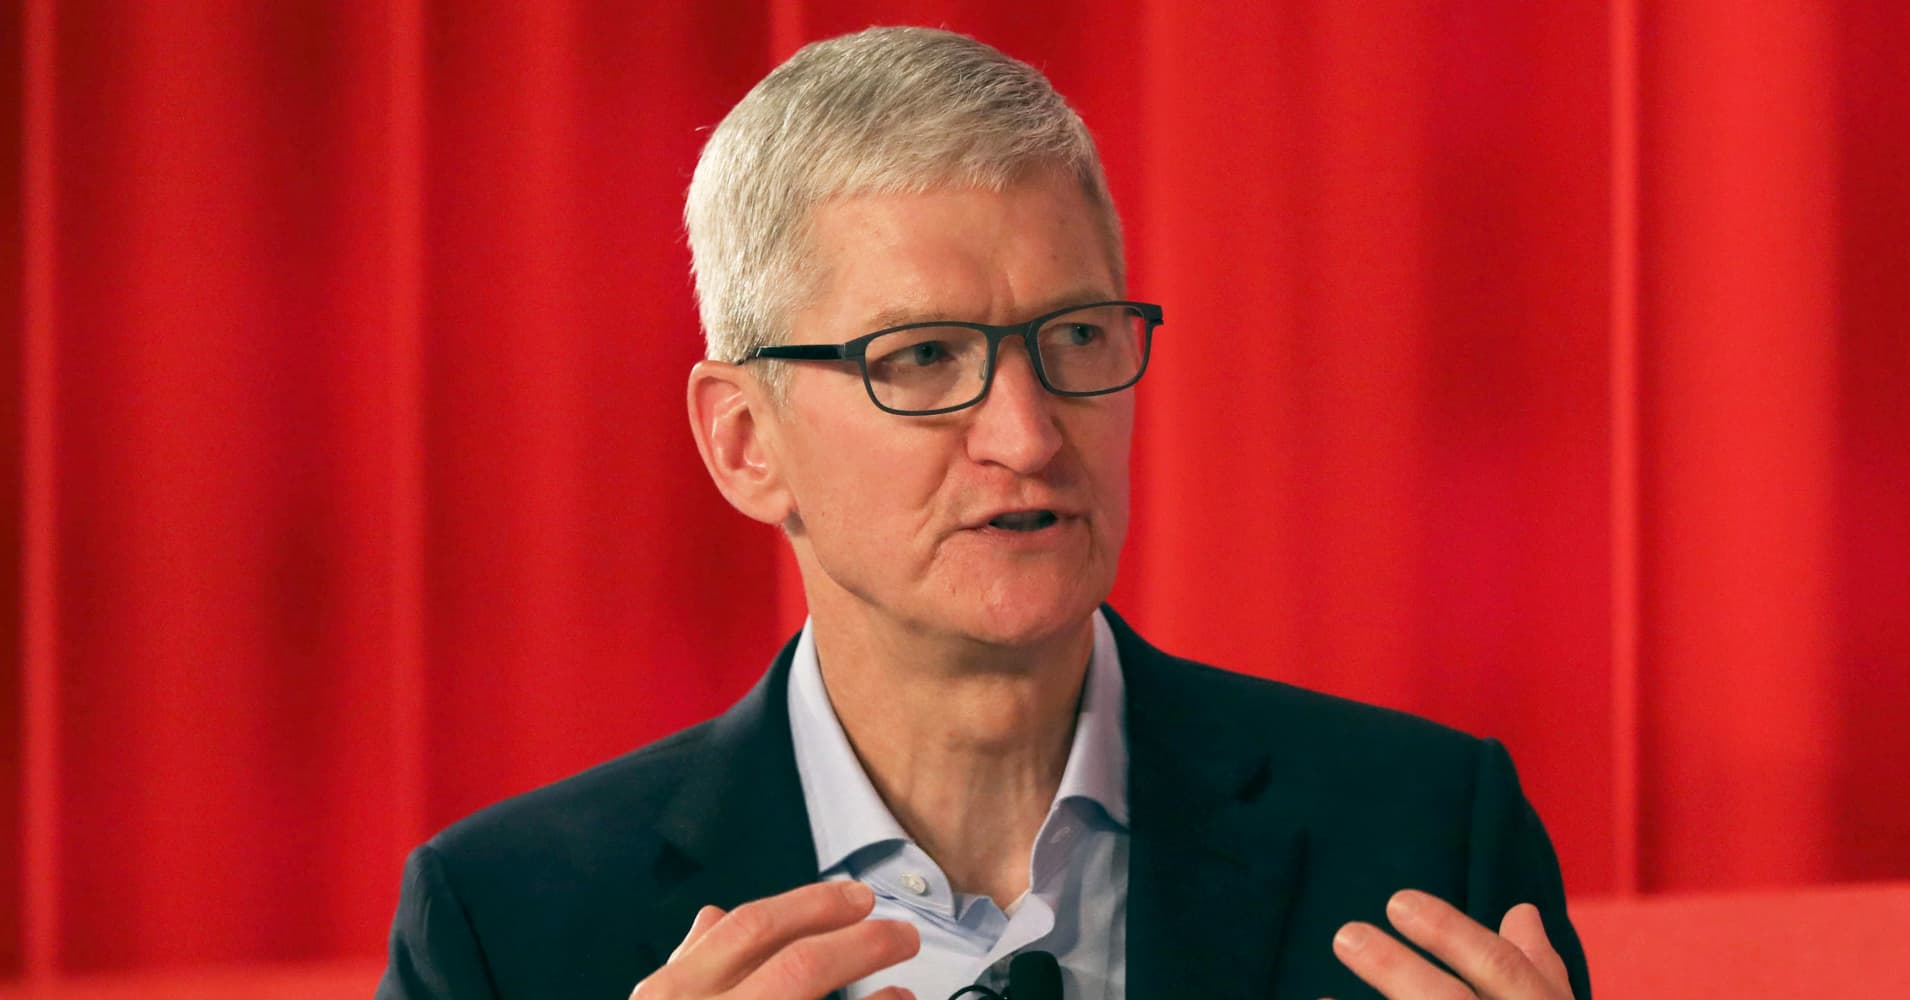 Apple CEO Tim Cook: Europe is leading the U.S. when it comes to tech regulation